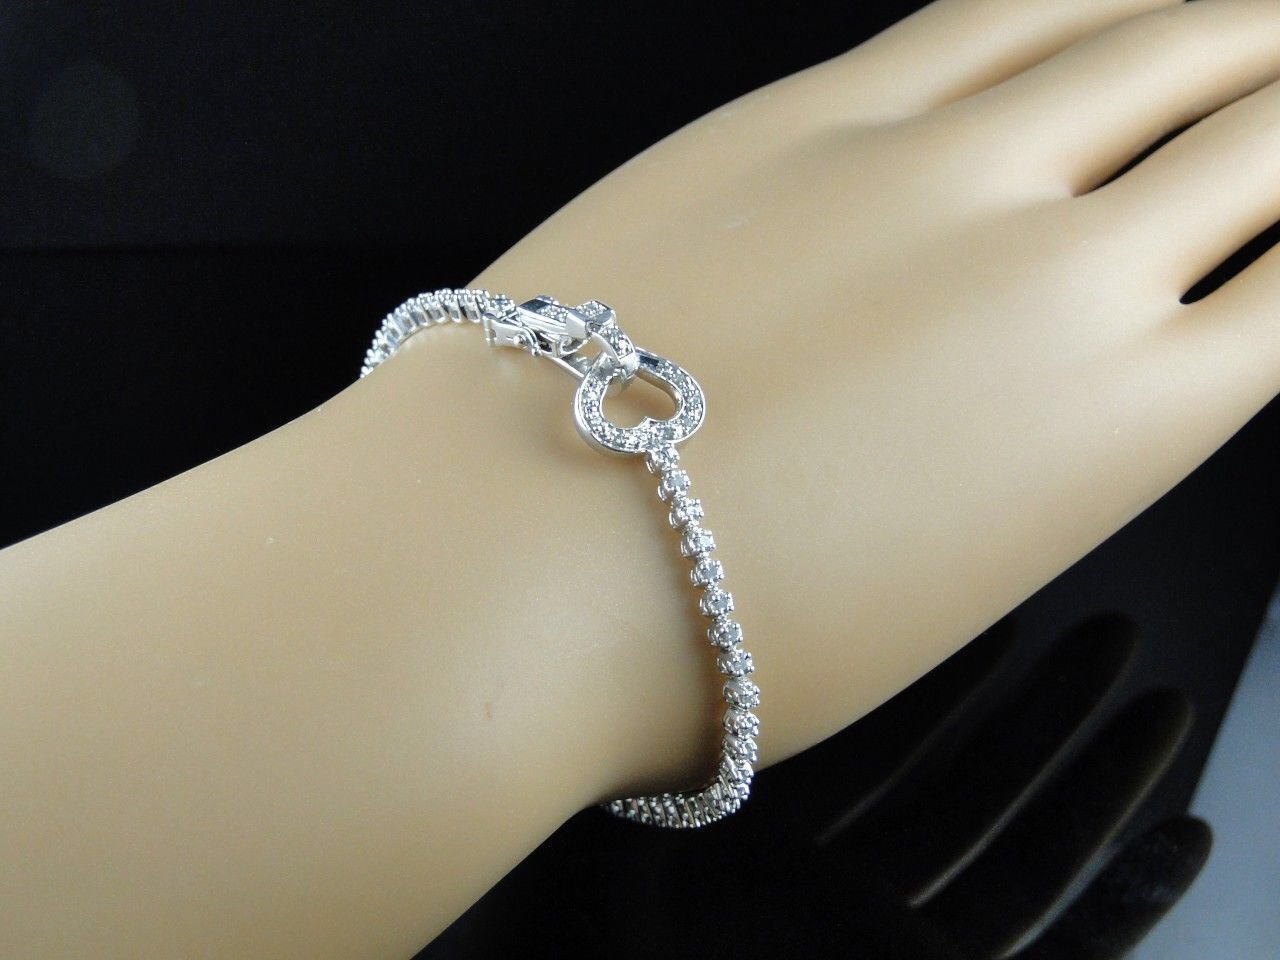 bracelet mcdonough product heart kiki eden jewellery single diamond